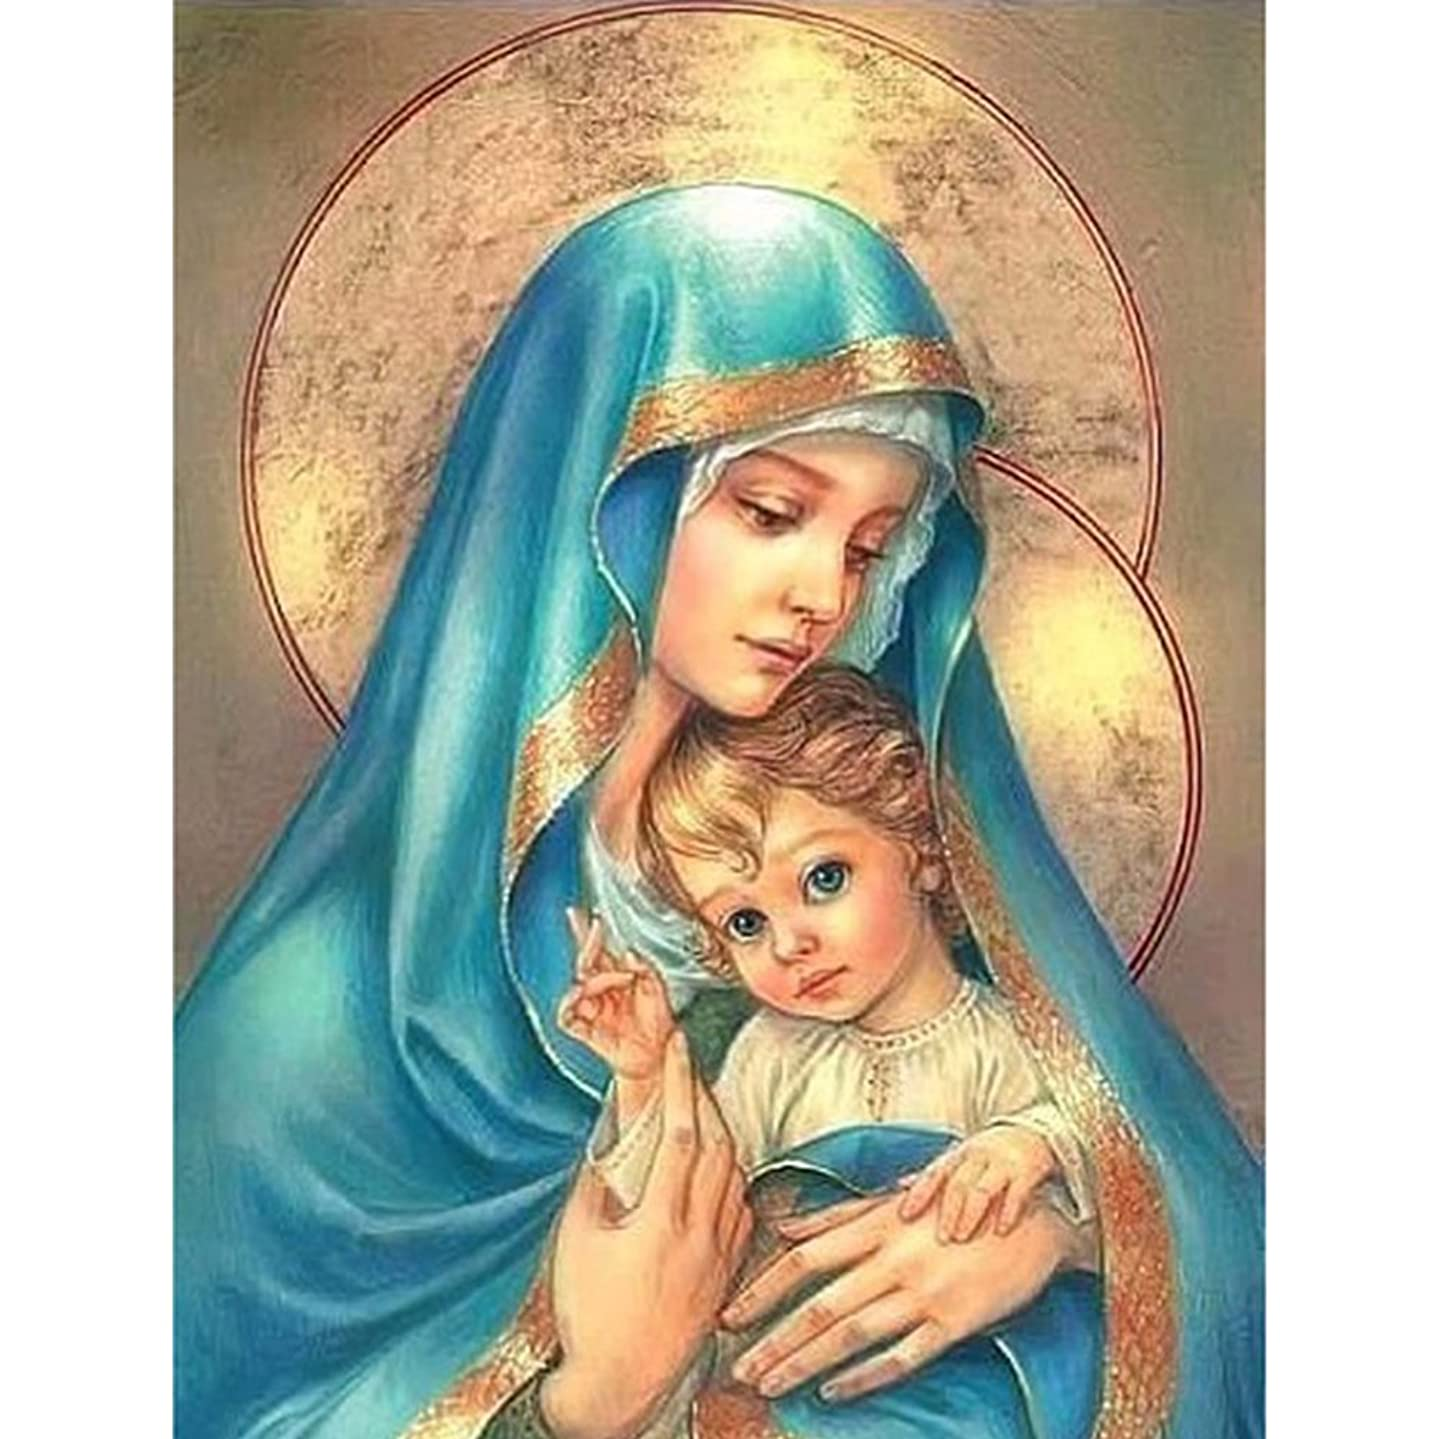 5D Diamond Painting DIY Cross Stitch Painting Kits Arts Crafts, Rhinestone Embroidery for Home Wall Decoration(Madonna and Child)